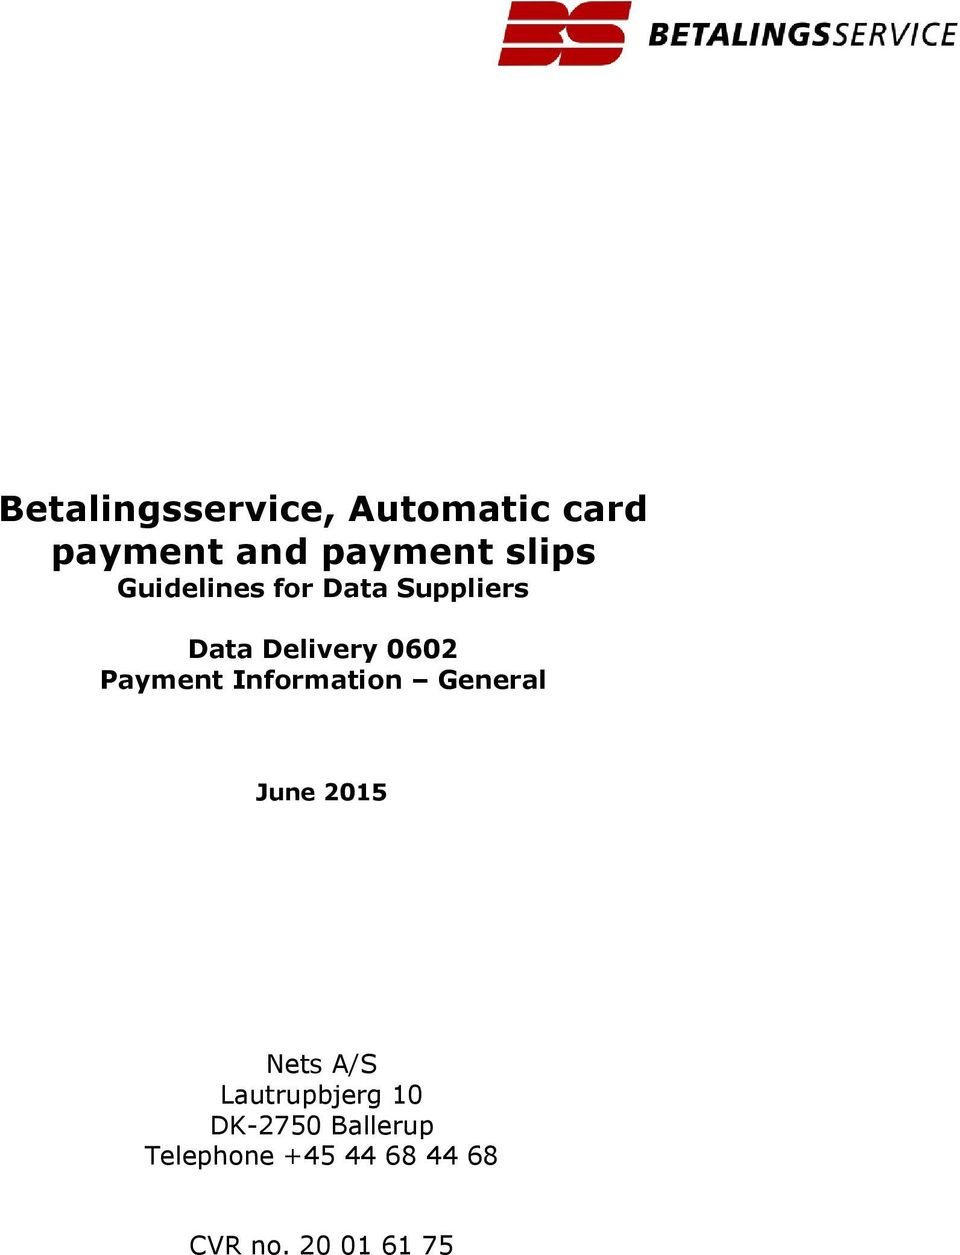 Betalingsservice Automatic card payment and payment slips – Payment Slips